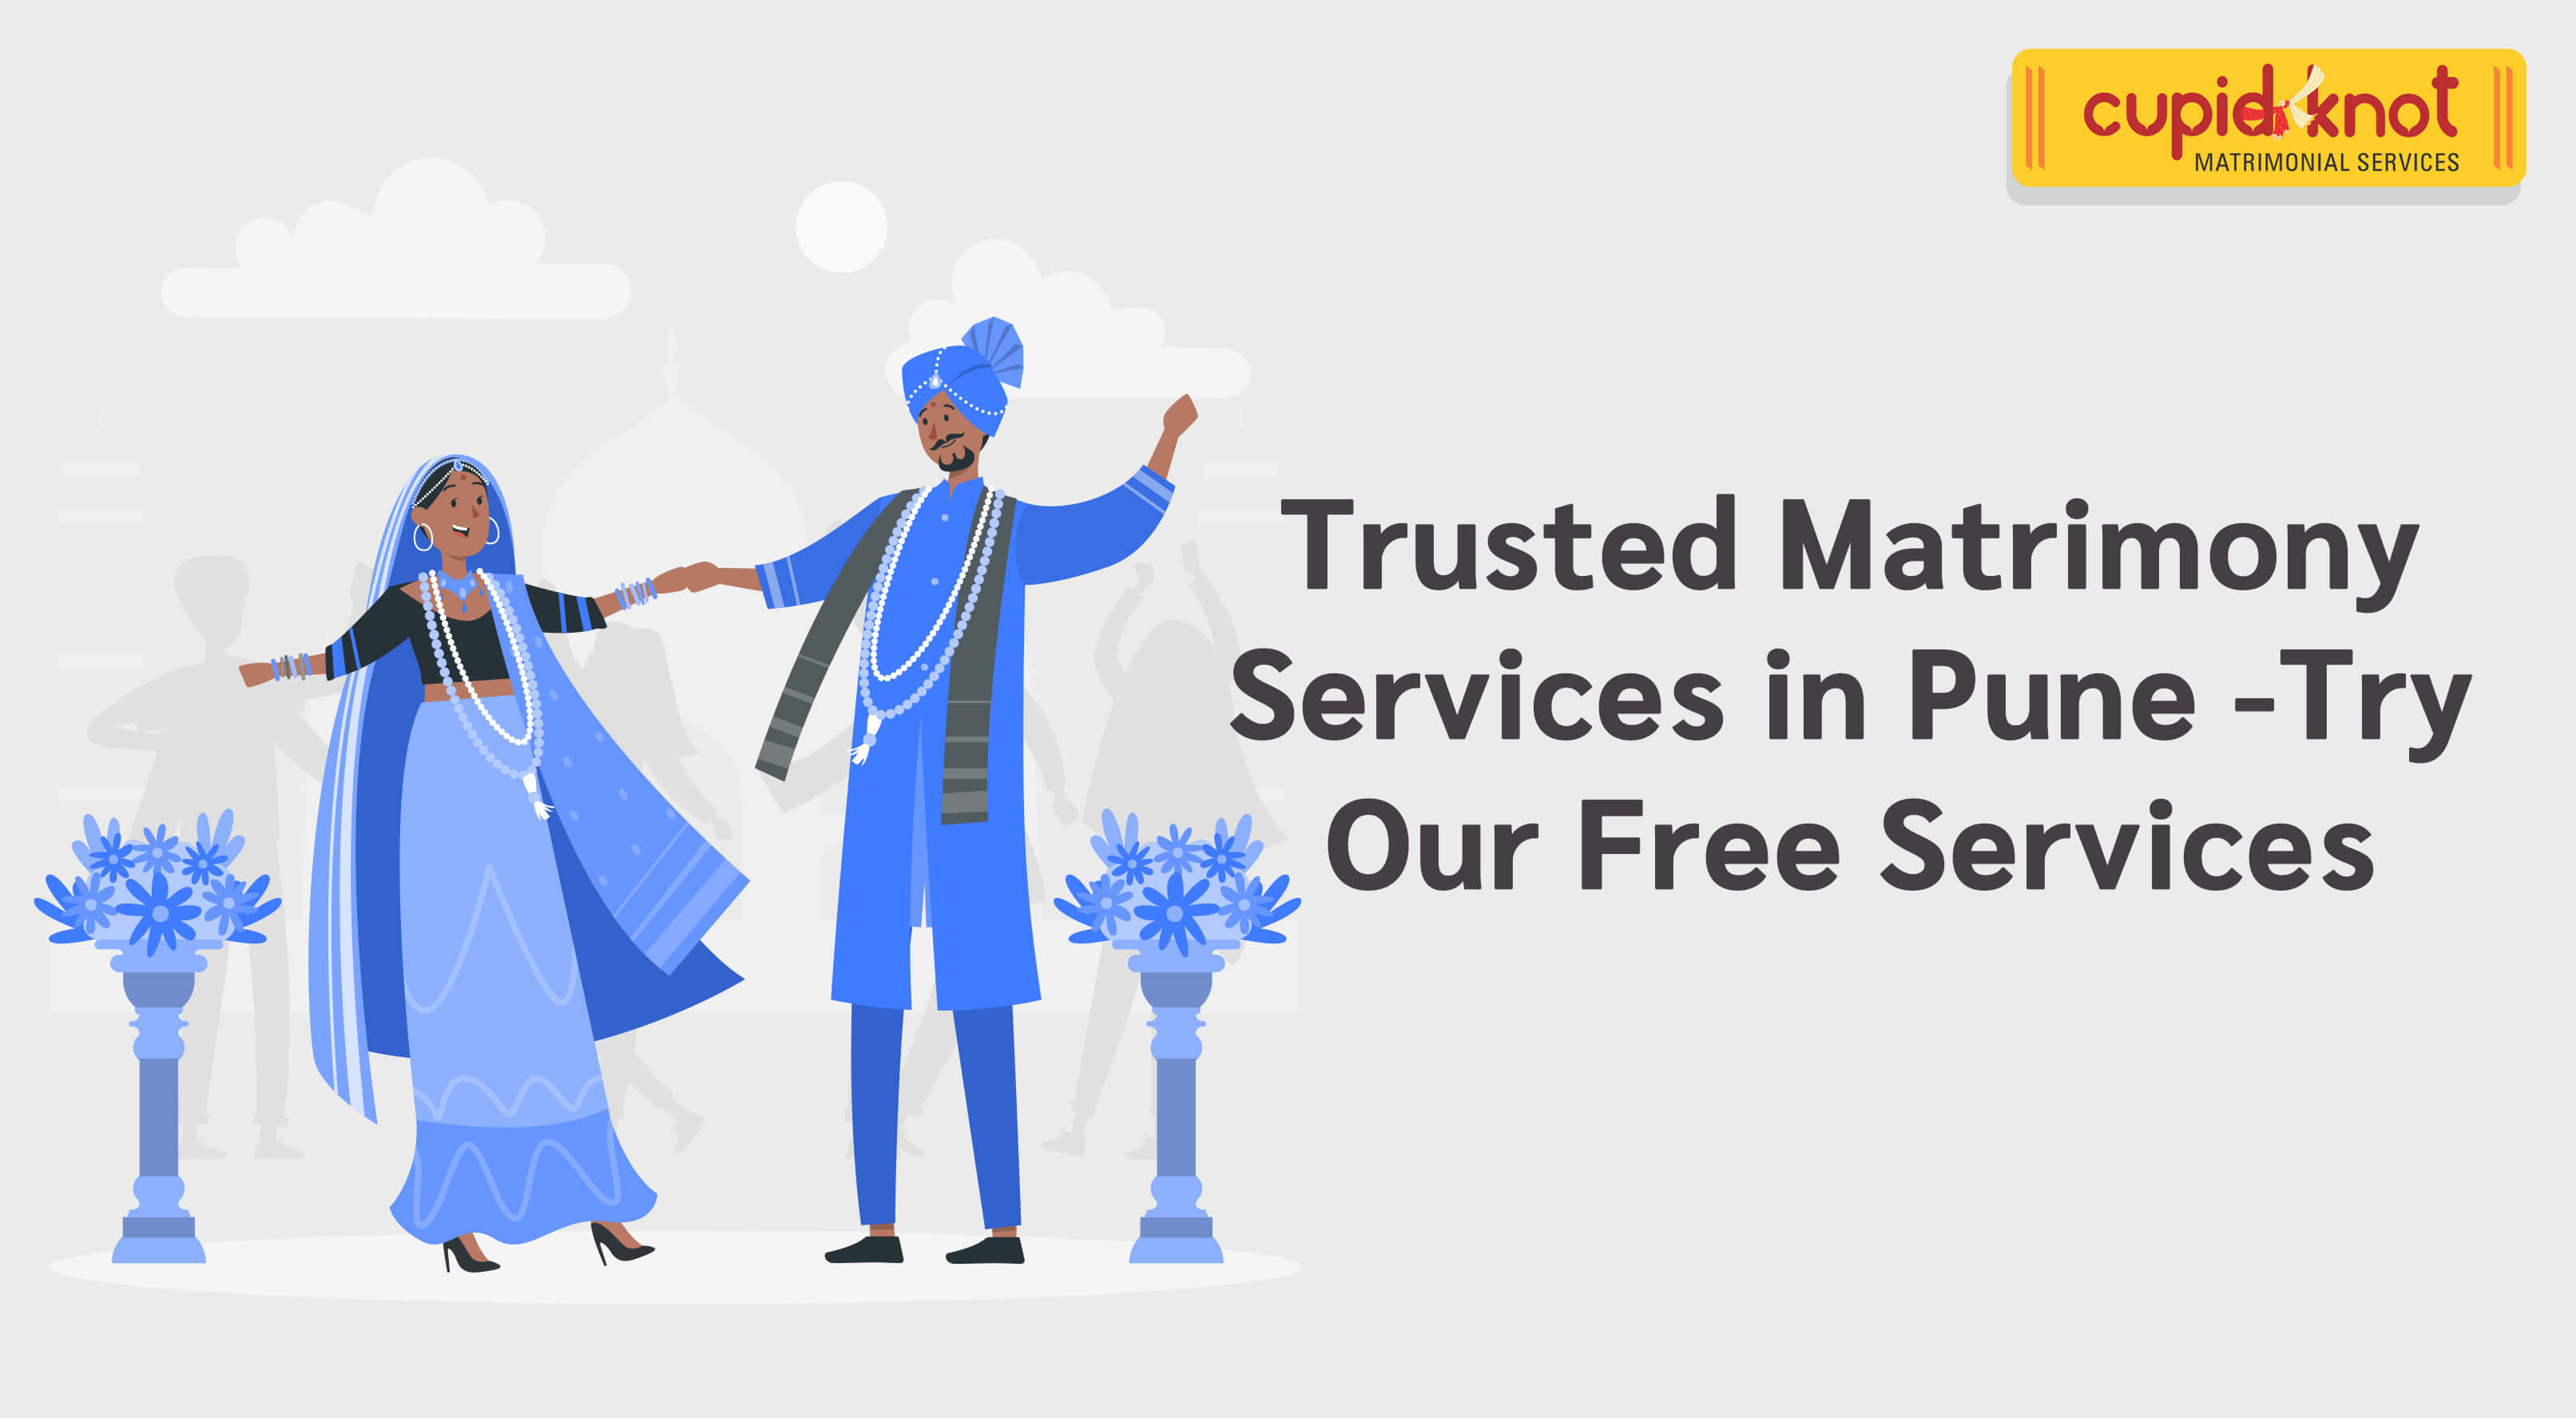 Trusted-Matrimony-Services-in-Pune-Try-Our-Free-Services